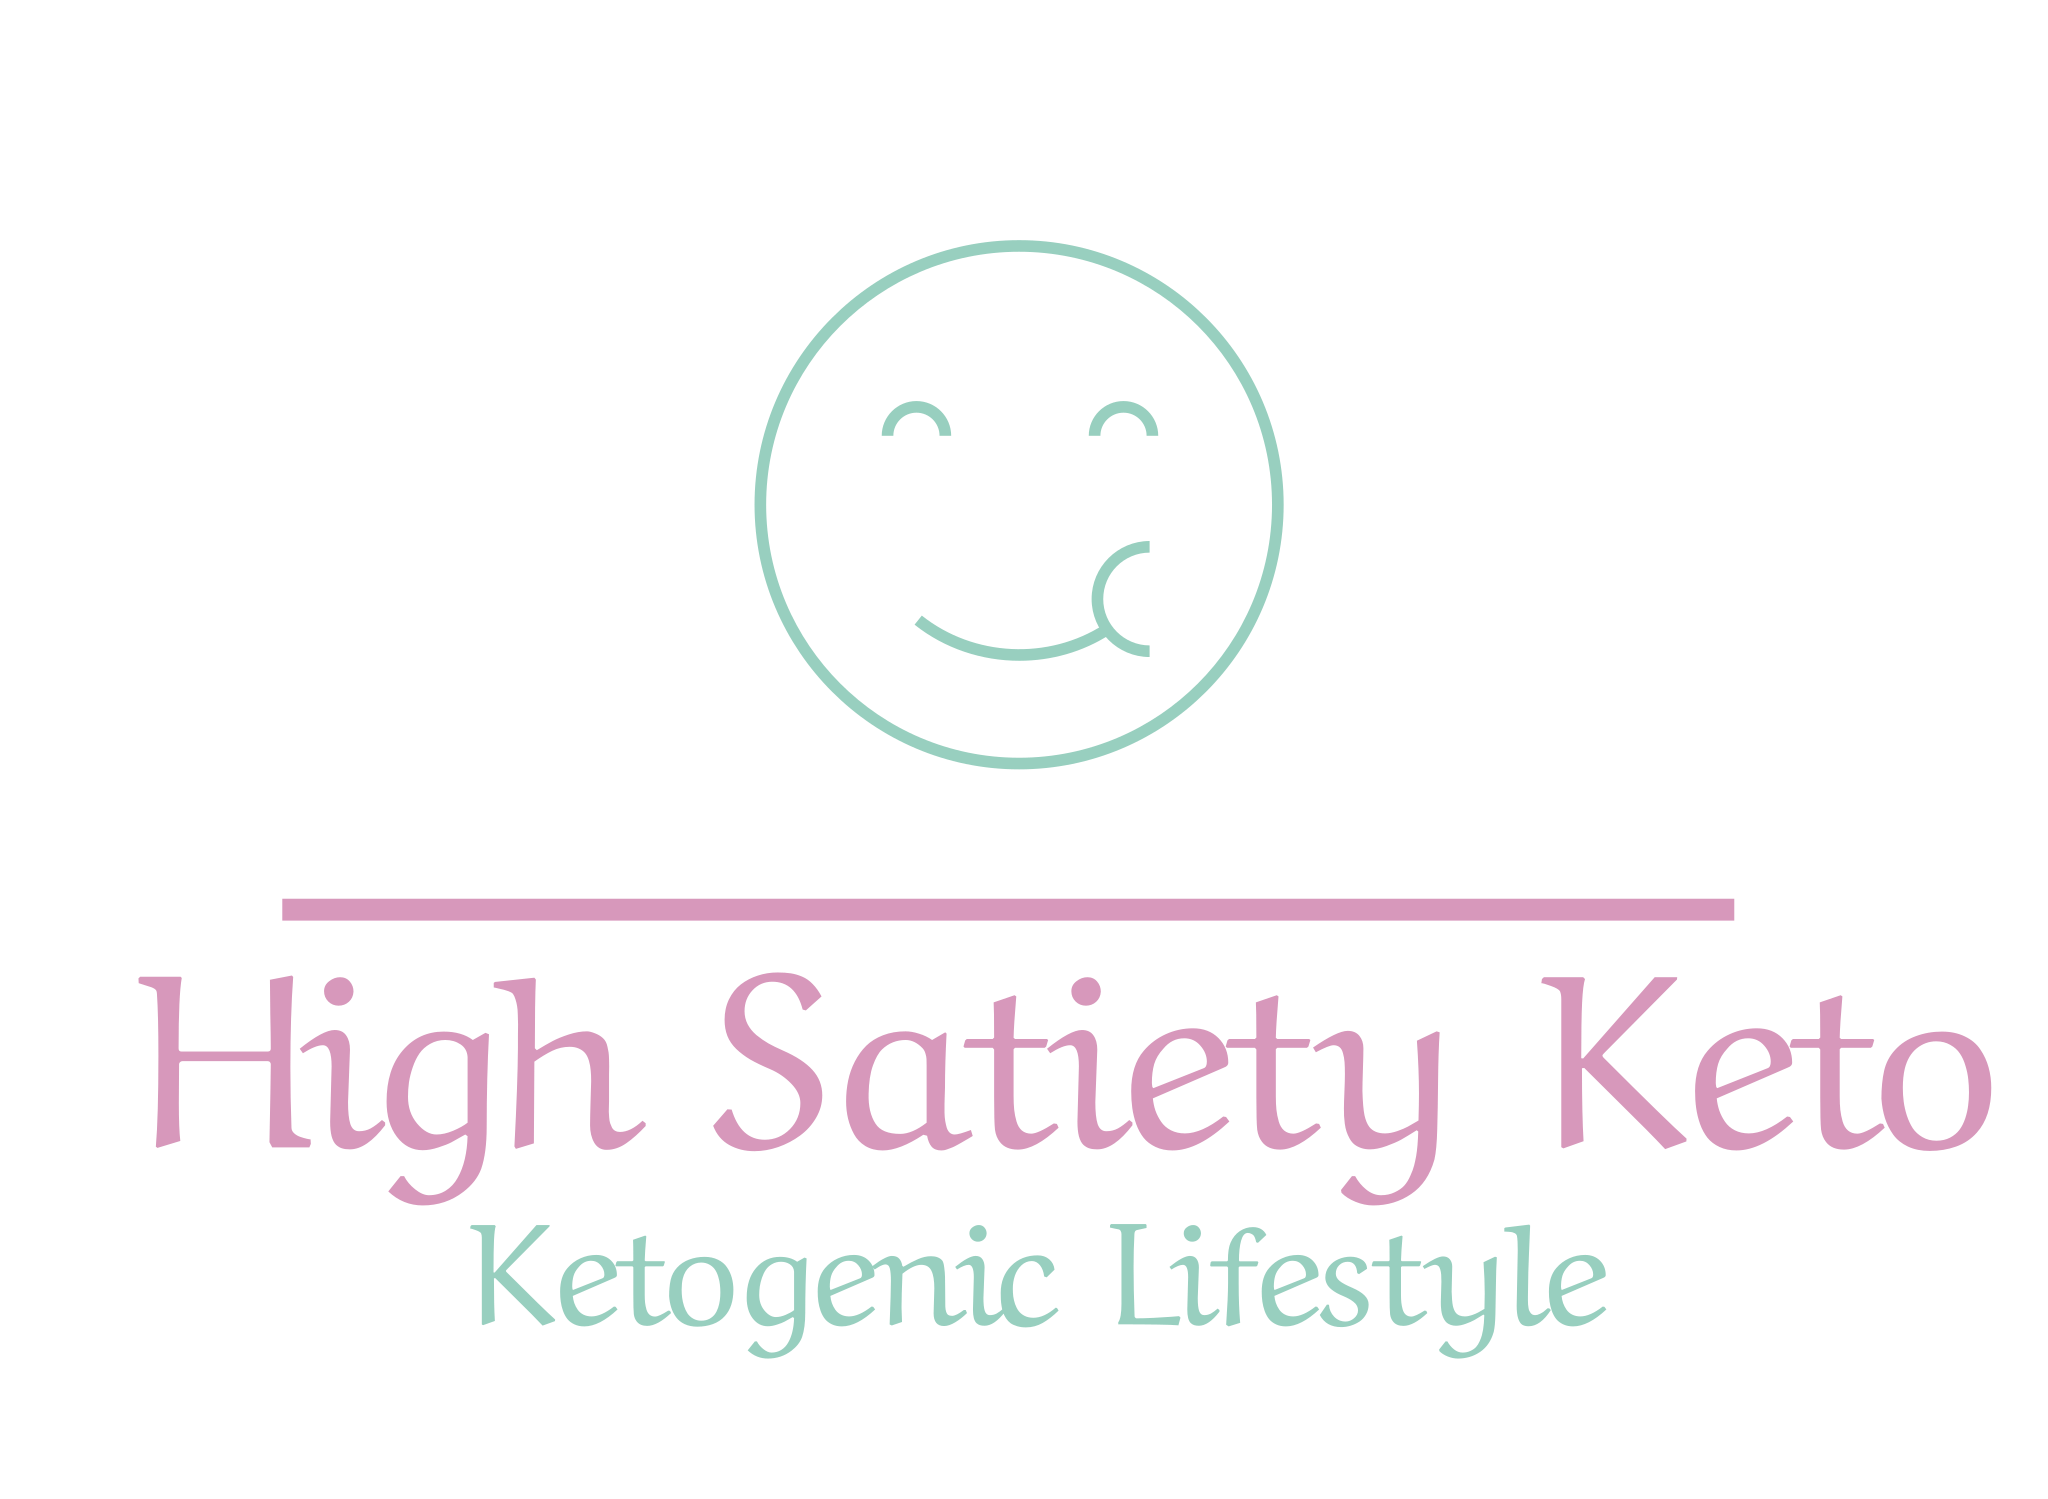 High Satiety Keto